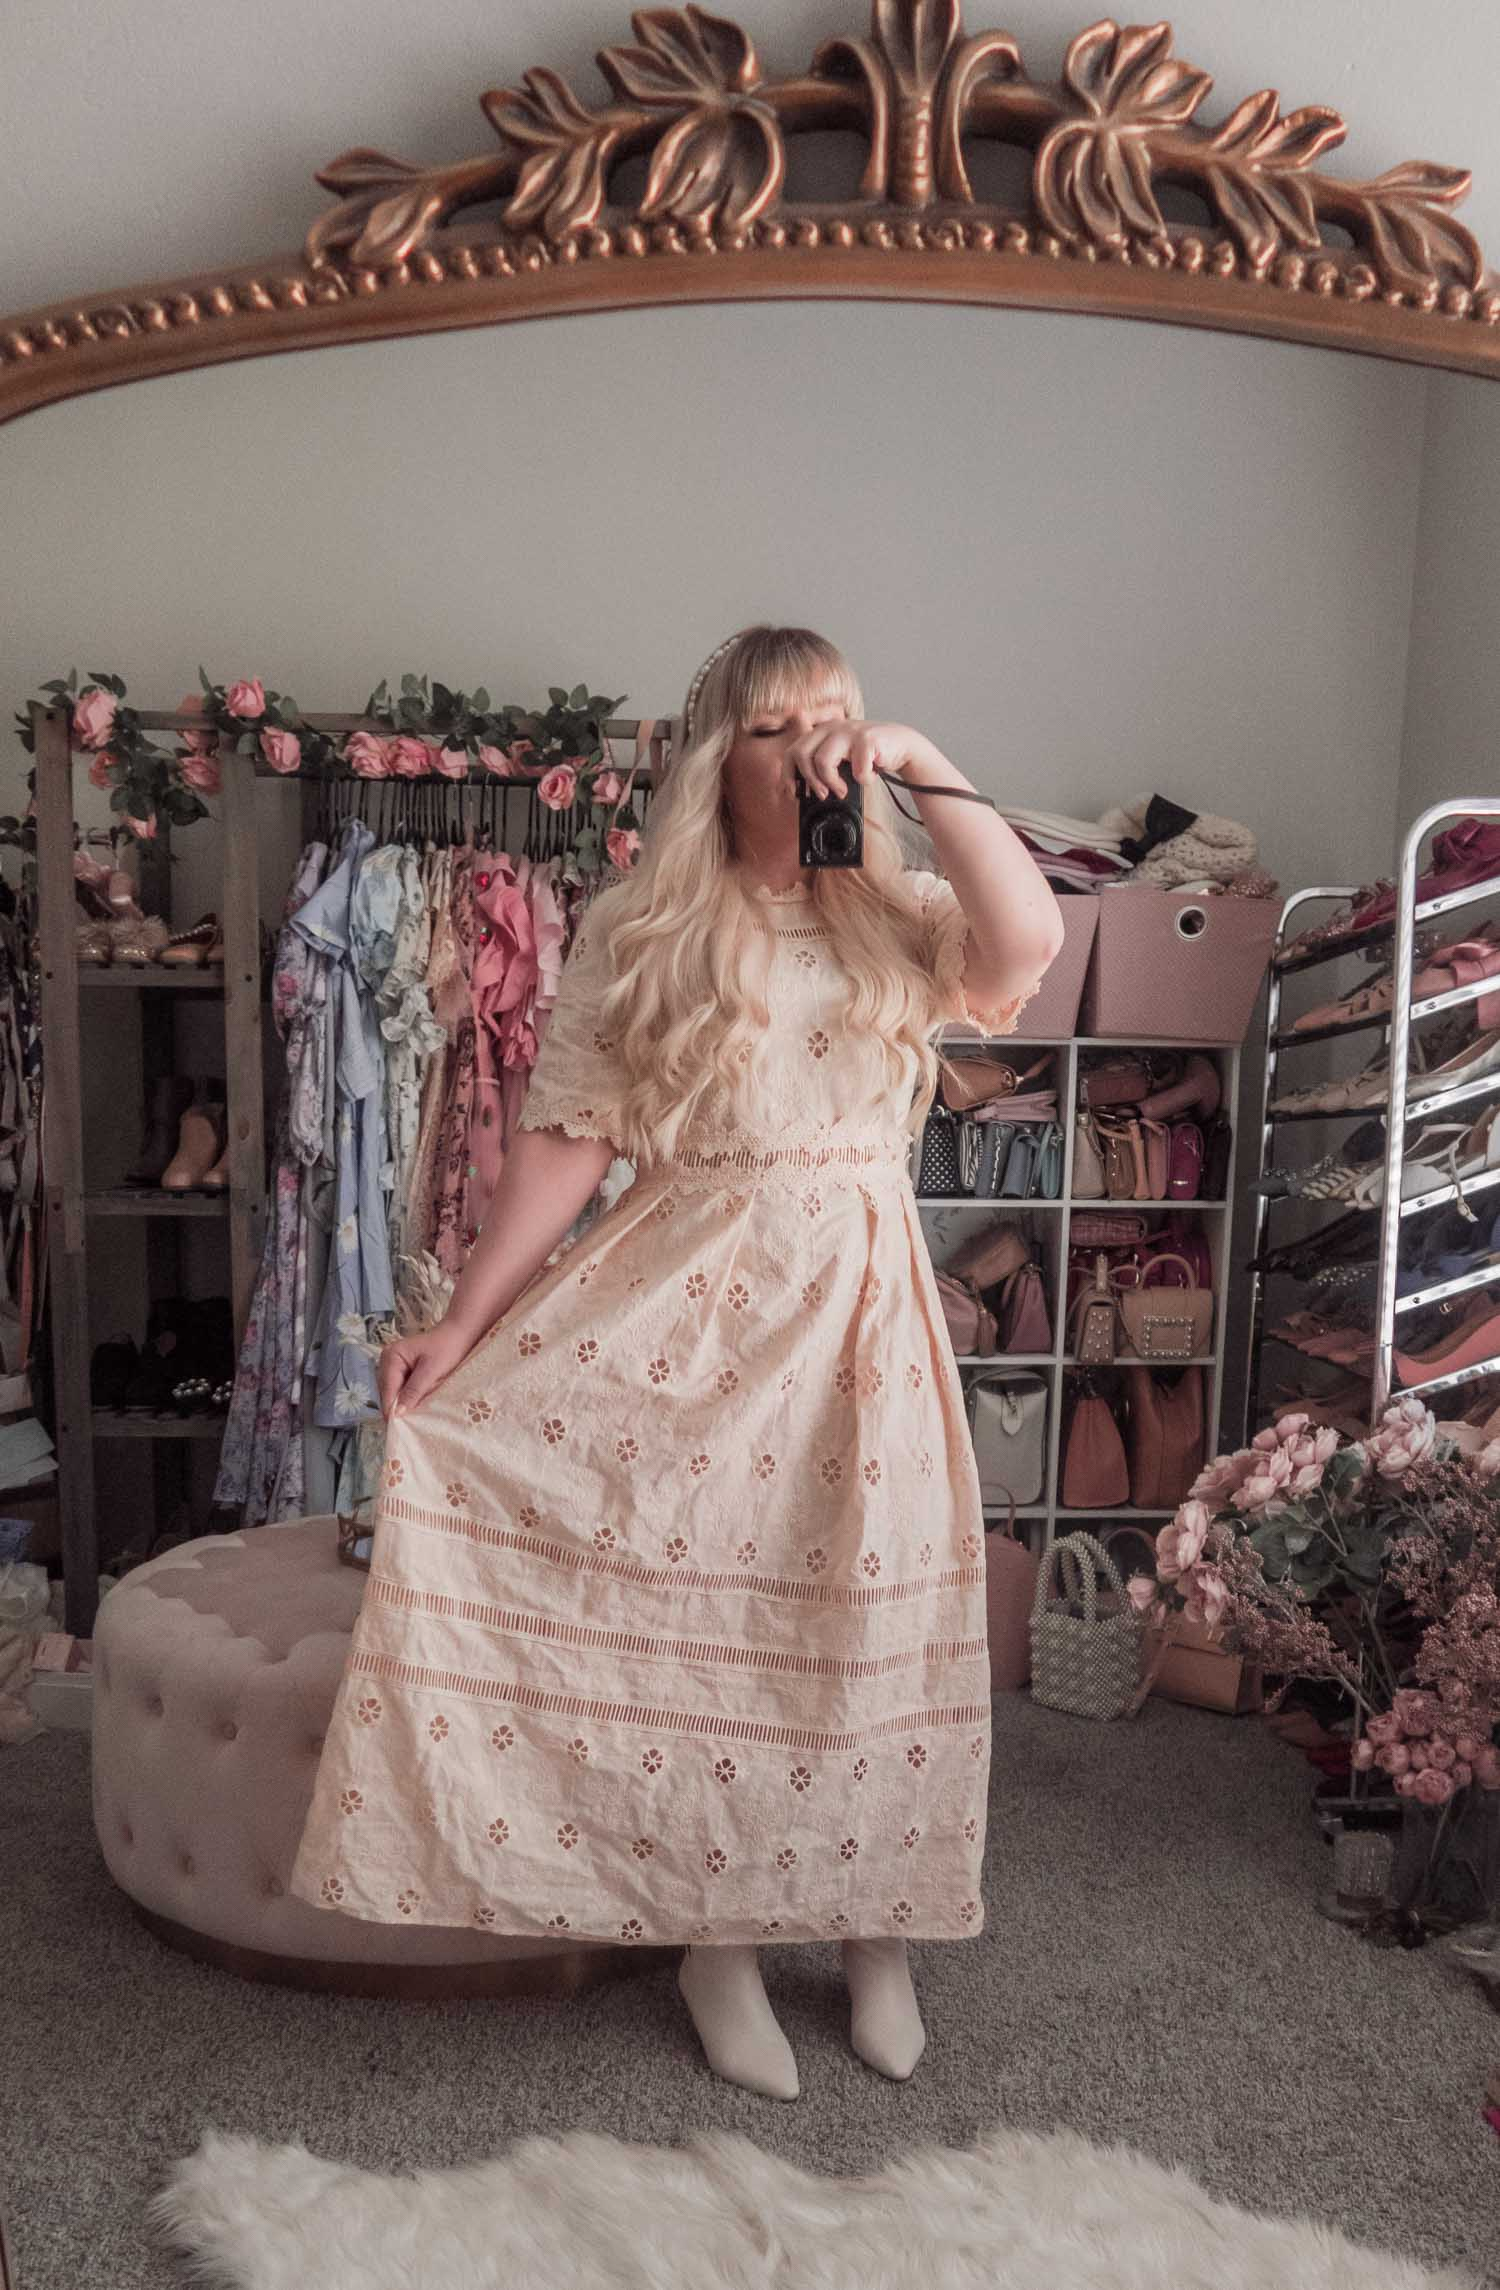 Feminine Fashion Blogger Elizabeth Hugen of Lizzie in Lace shares an updated Chicwish review and styles 4 spring outfit ideas including a cream lace Chicwish dress